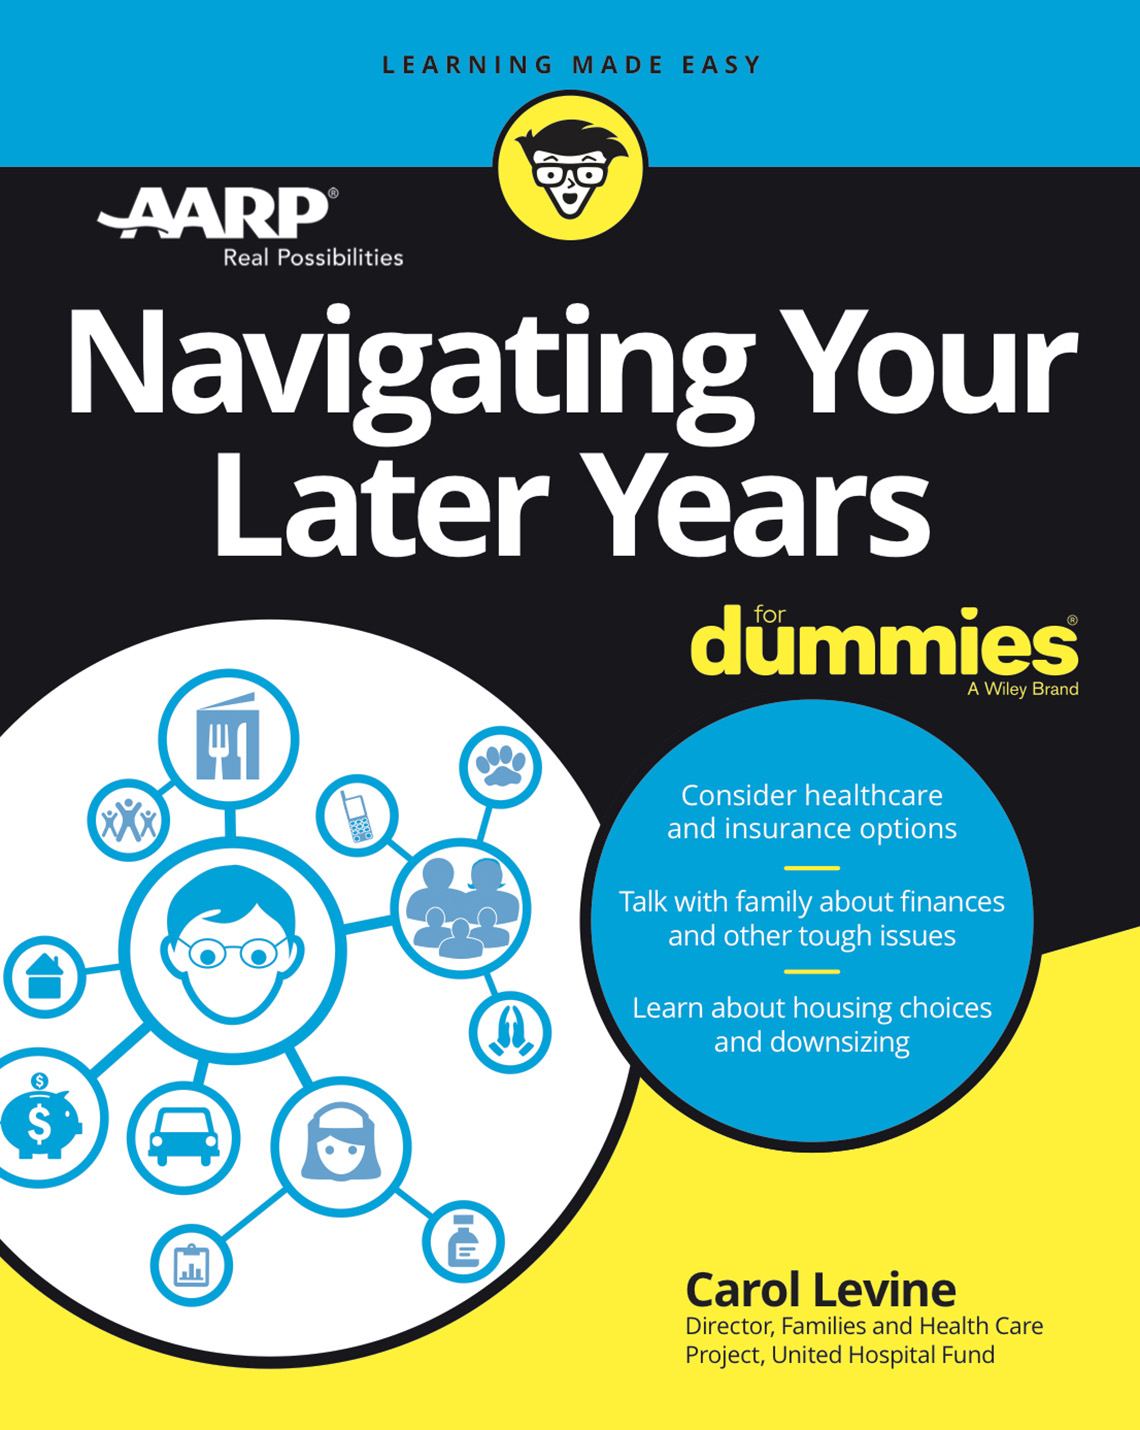 """Book cover reads """"Navigating Your Later Years dummies"""" by Carol Levine"""